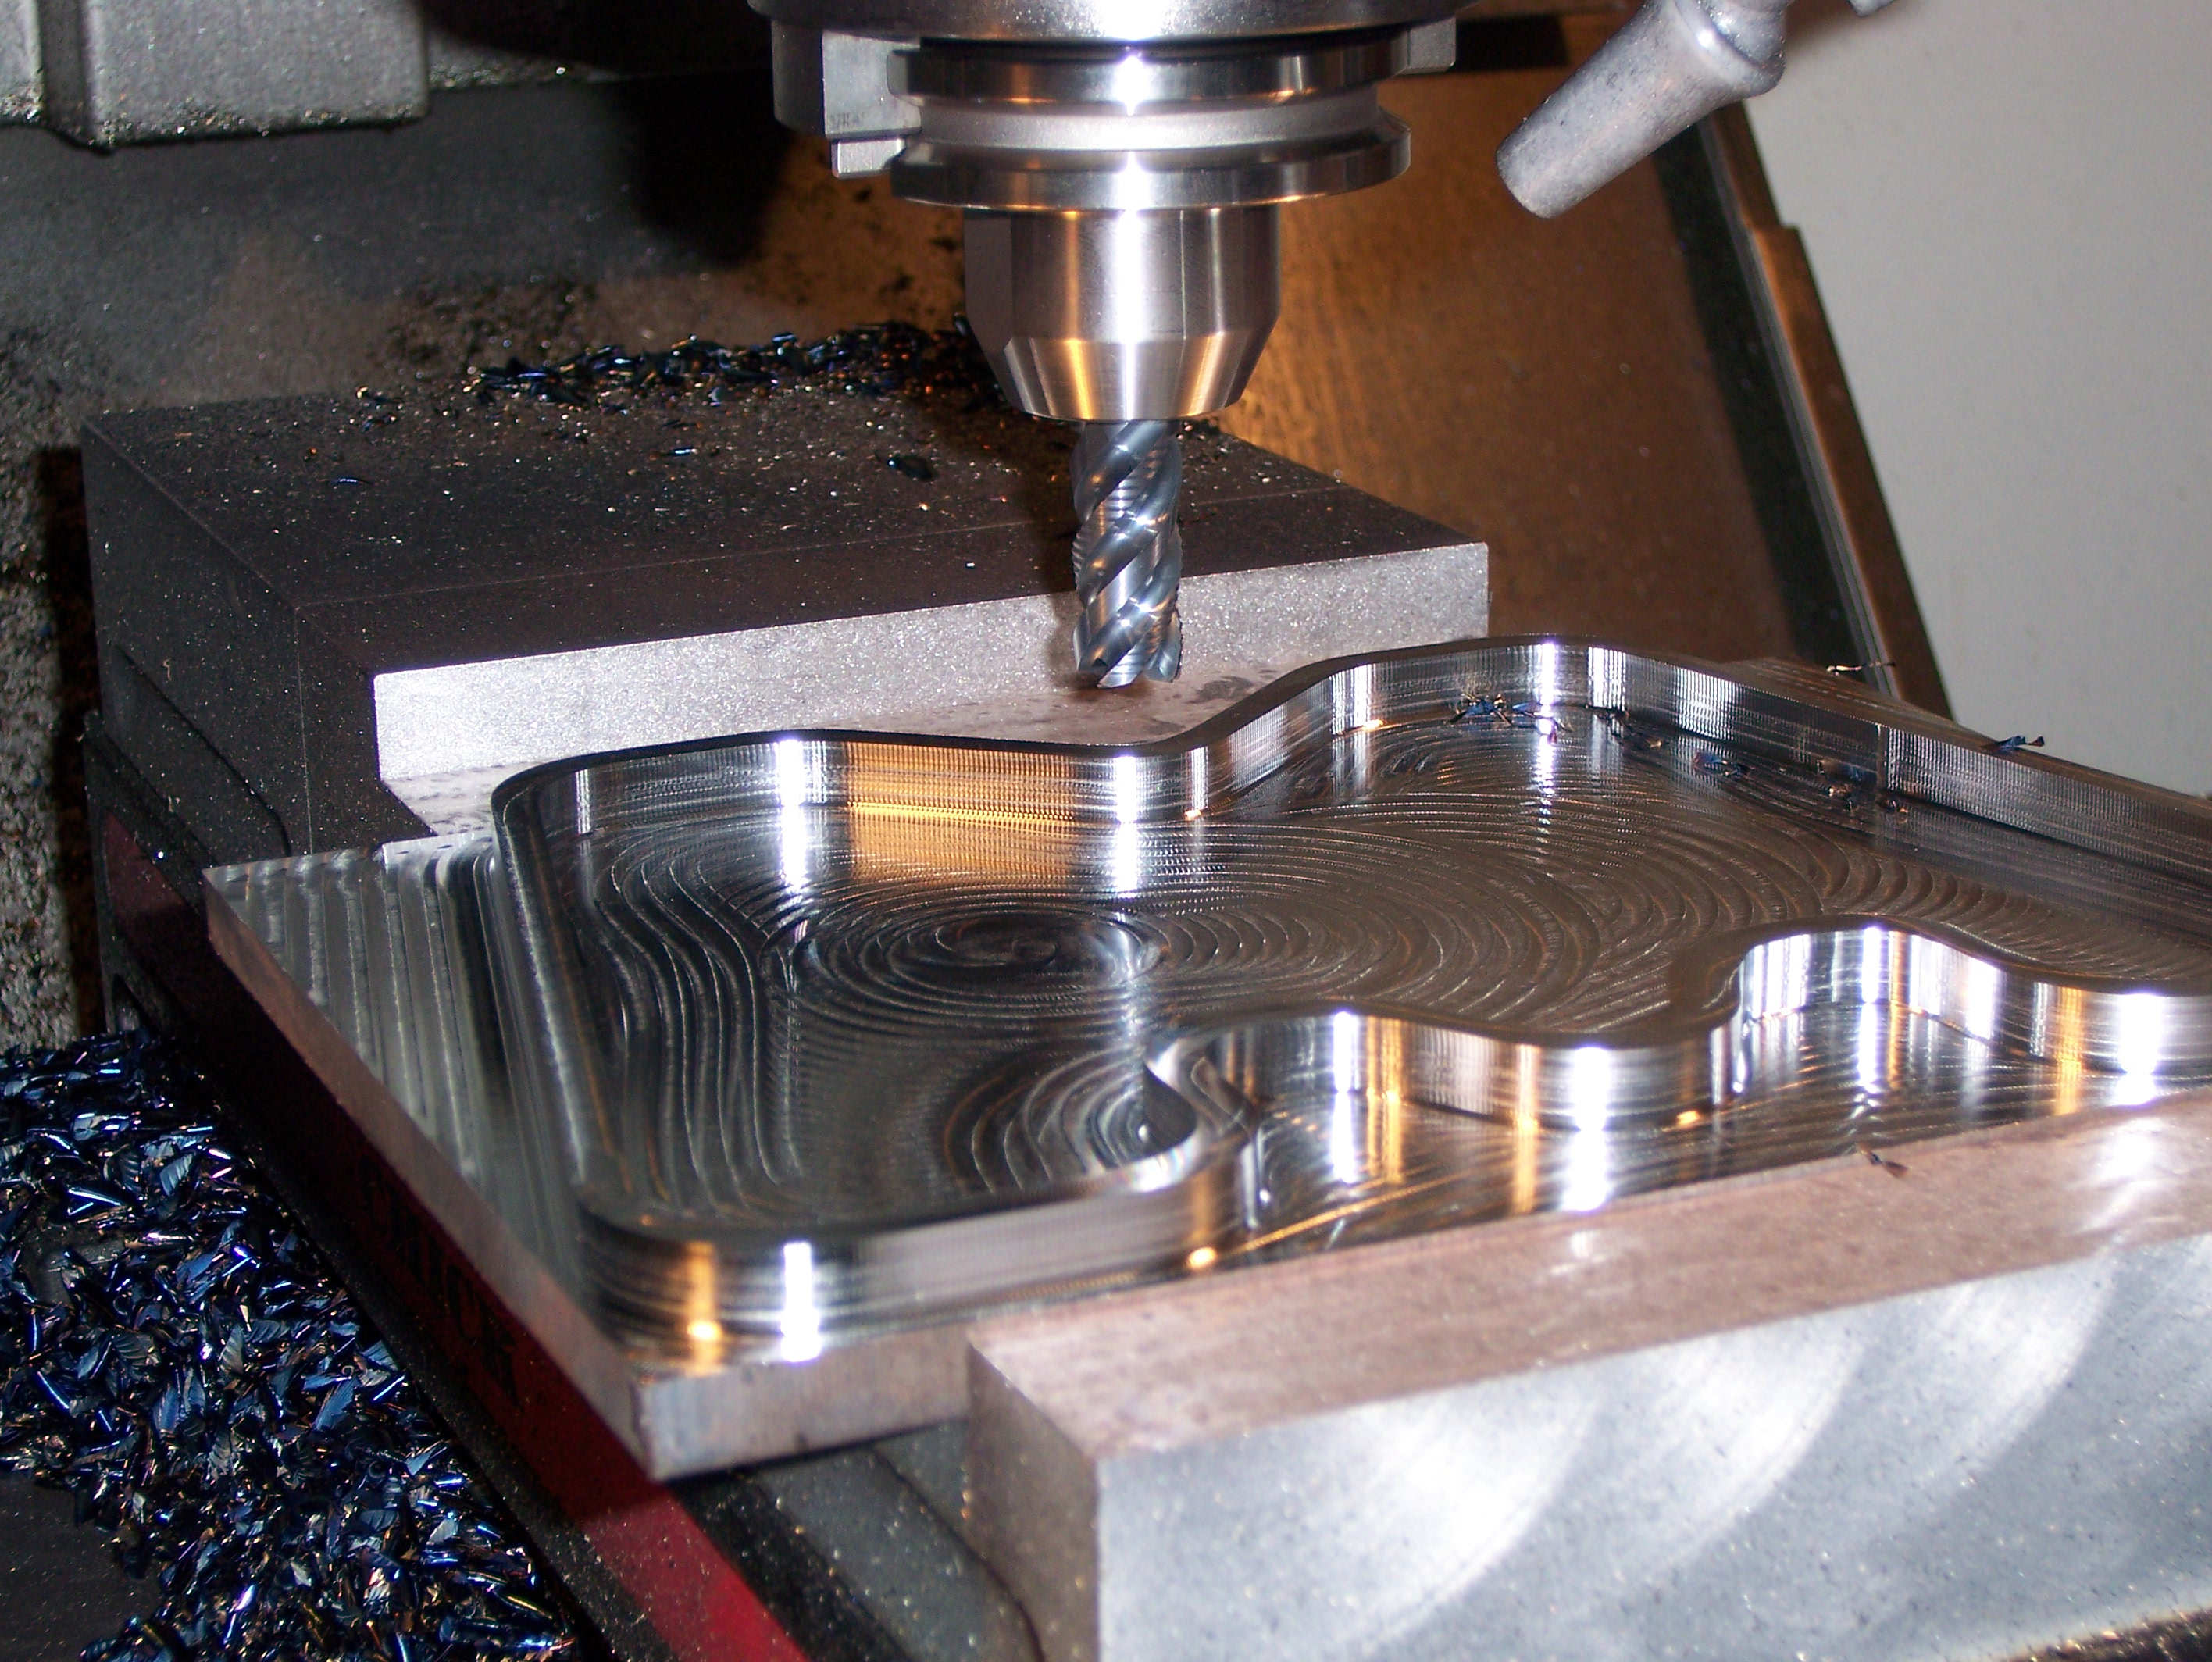 cnc machining cad-cam software